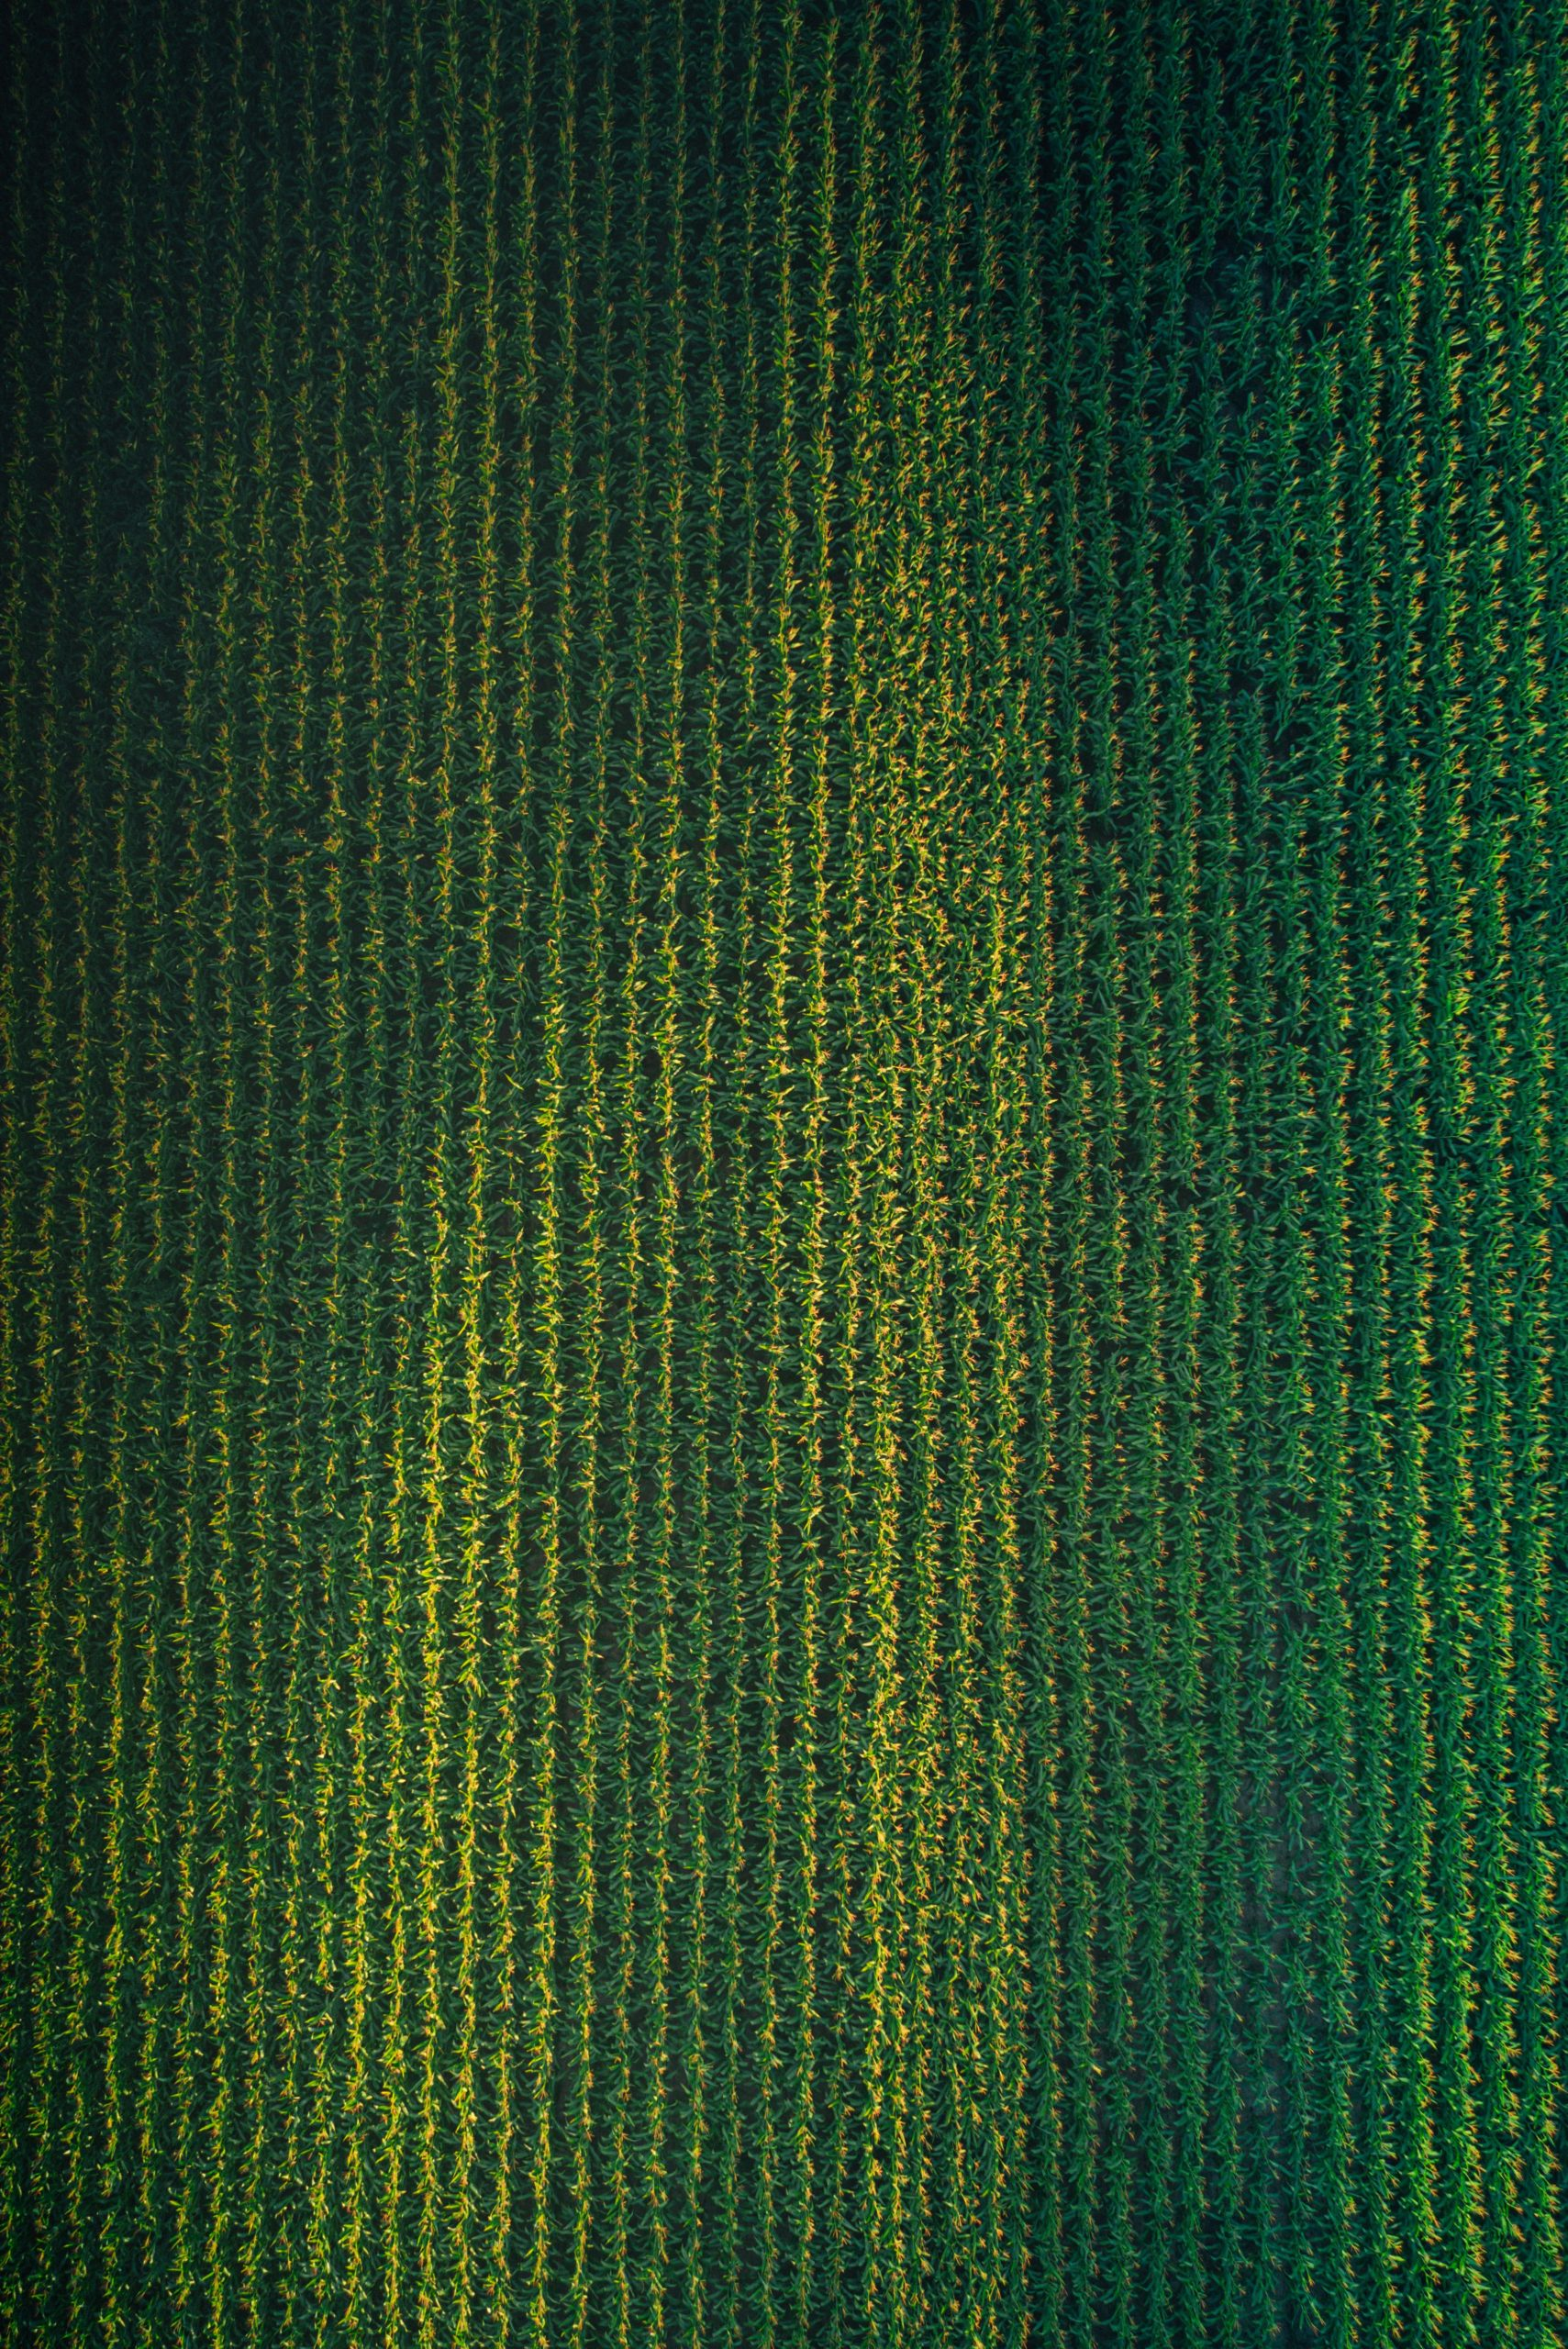 top view of rows of green corn in a field used for high fructose corn syrup